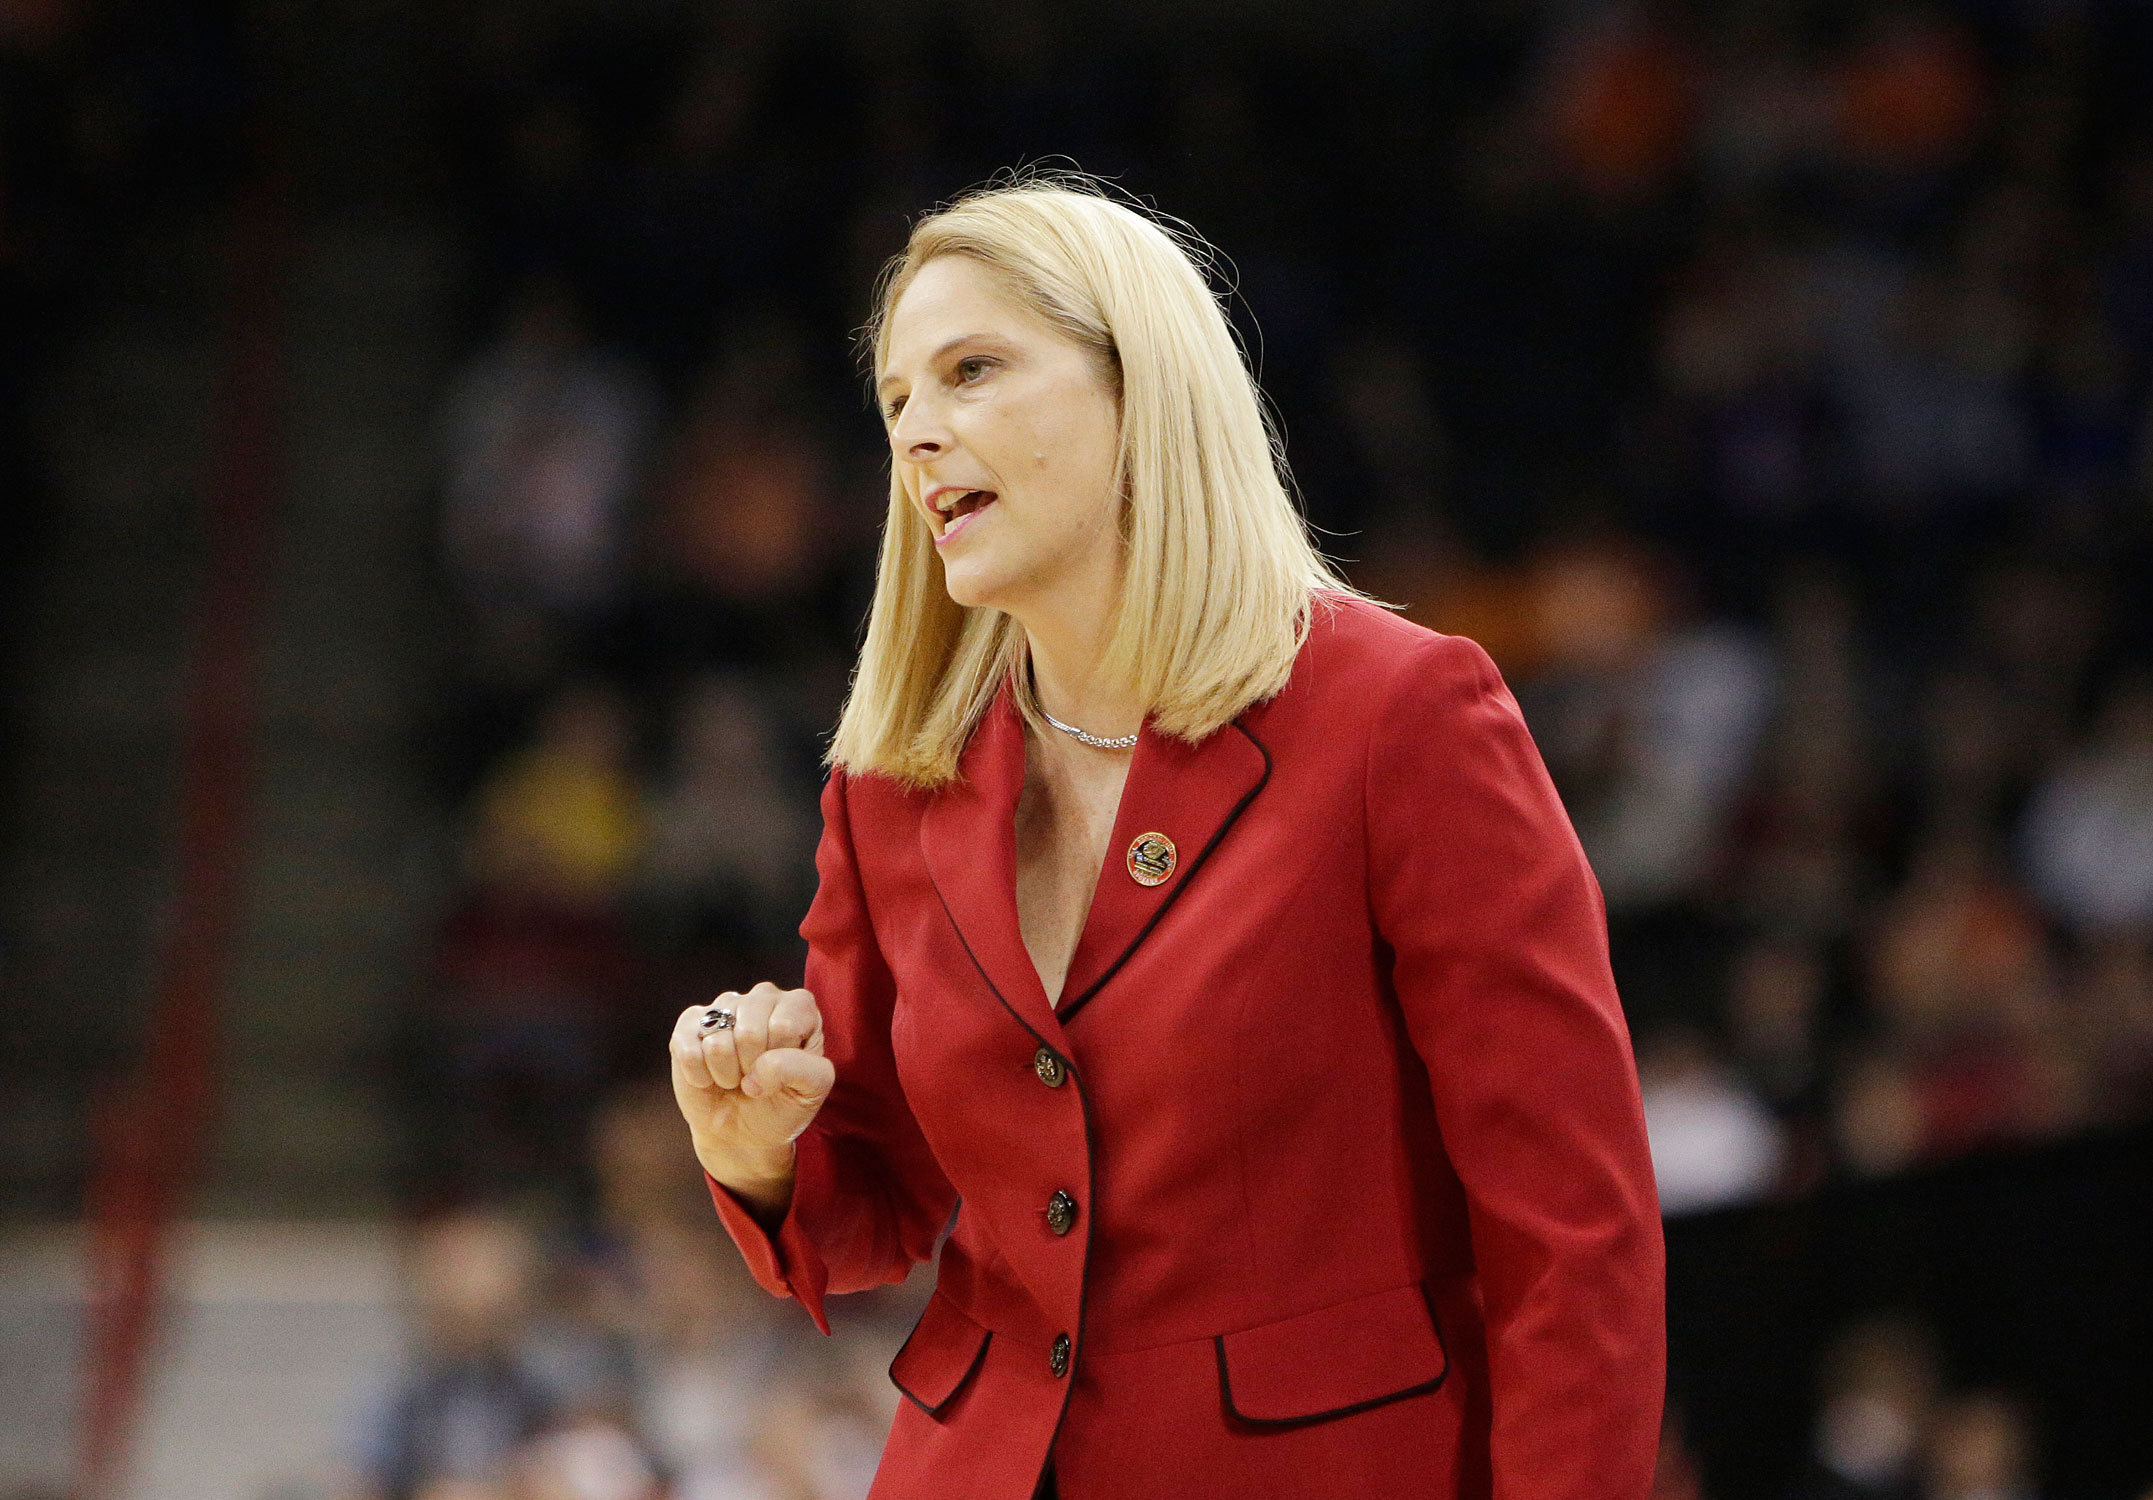 Final Four once more for Brenda Frese and the Terps